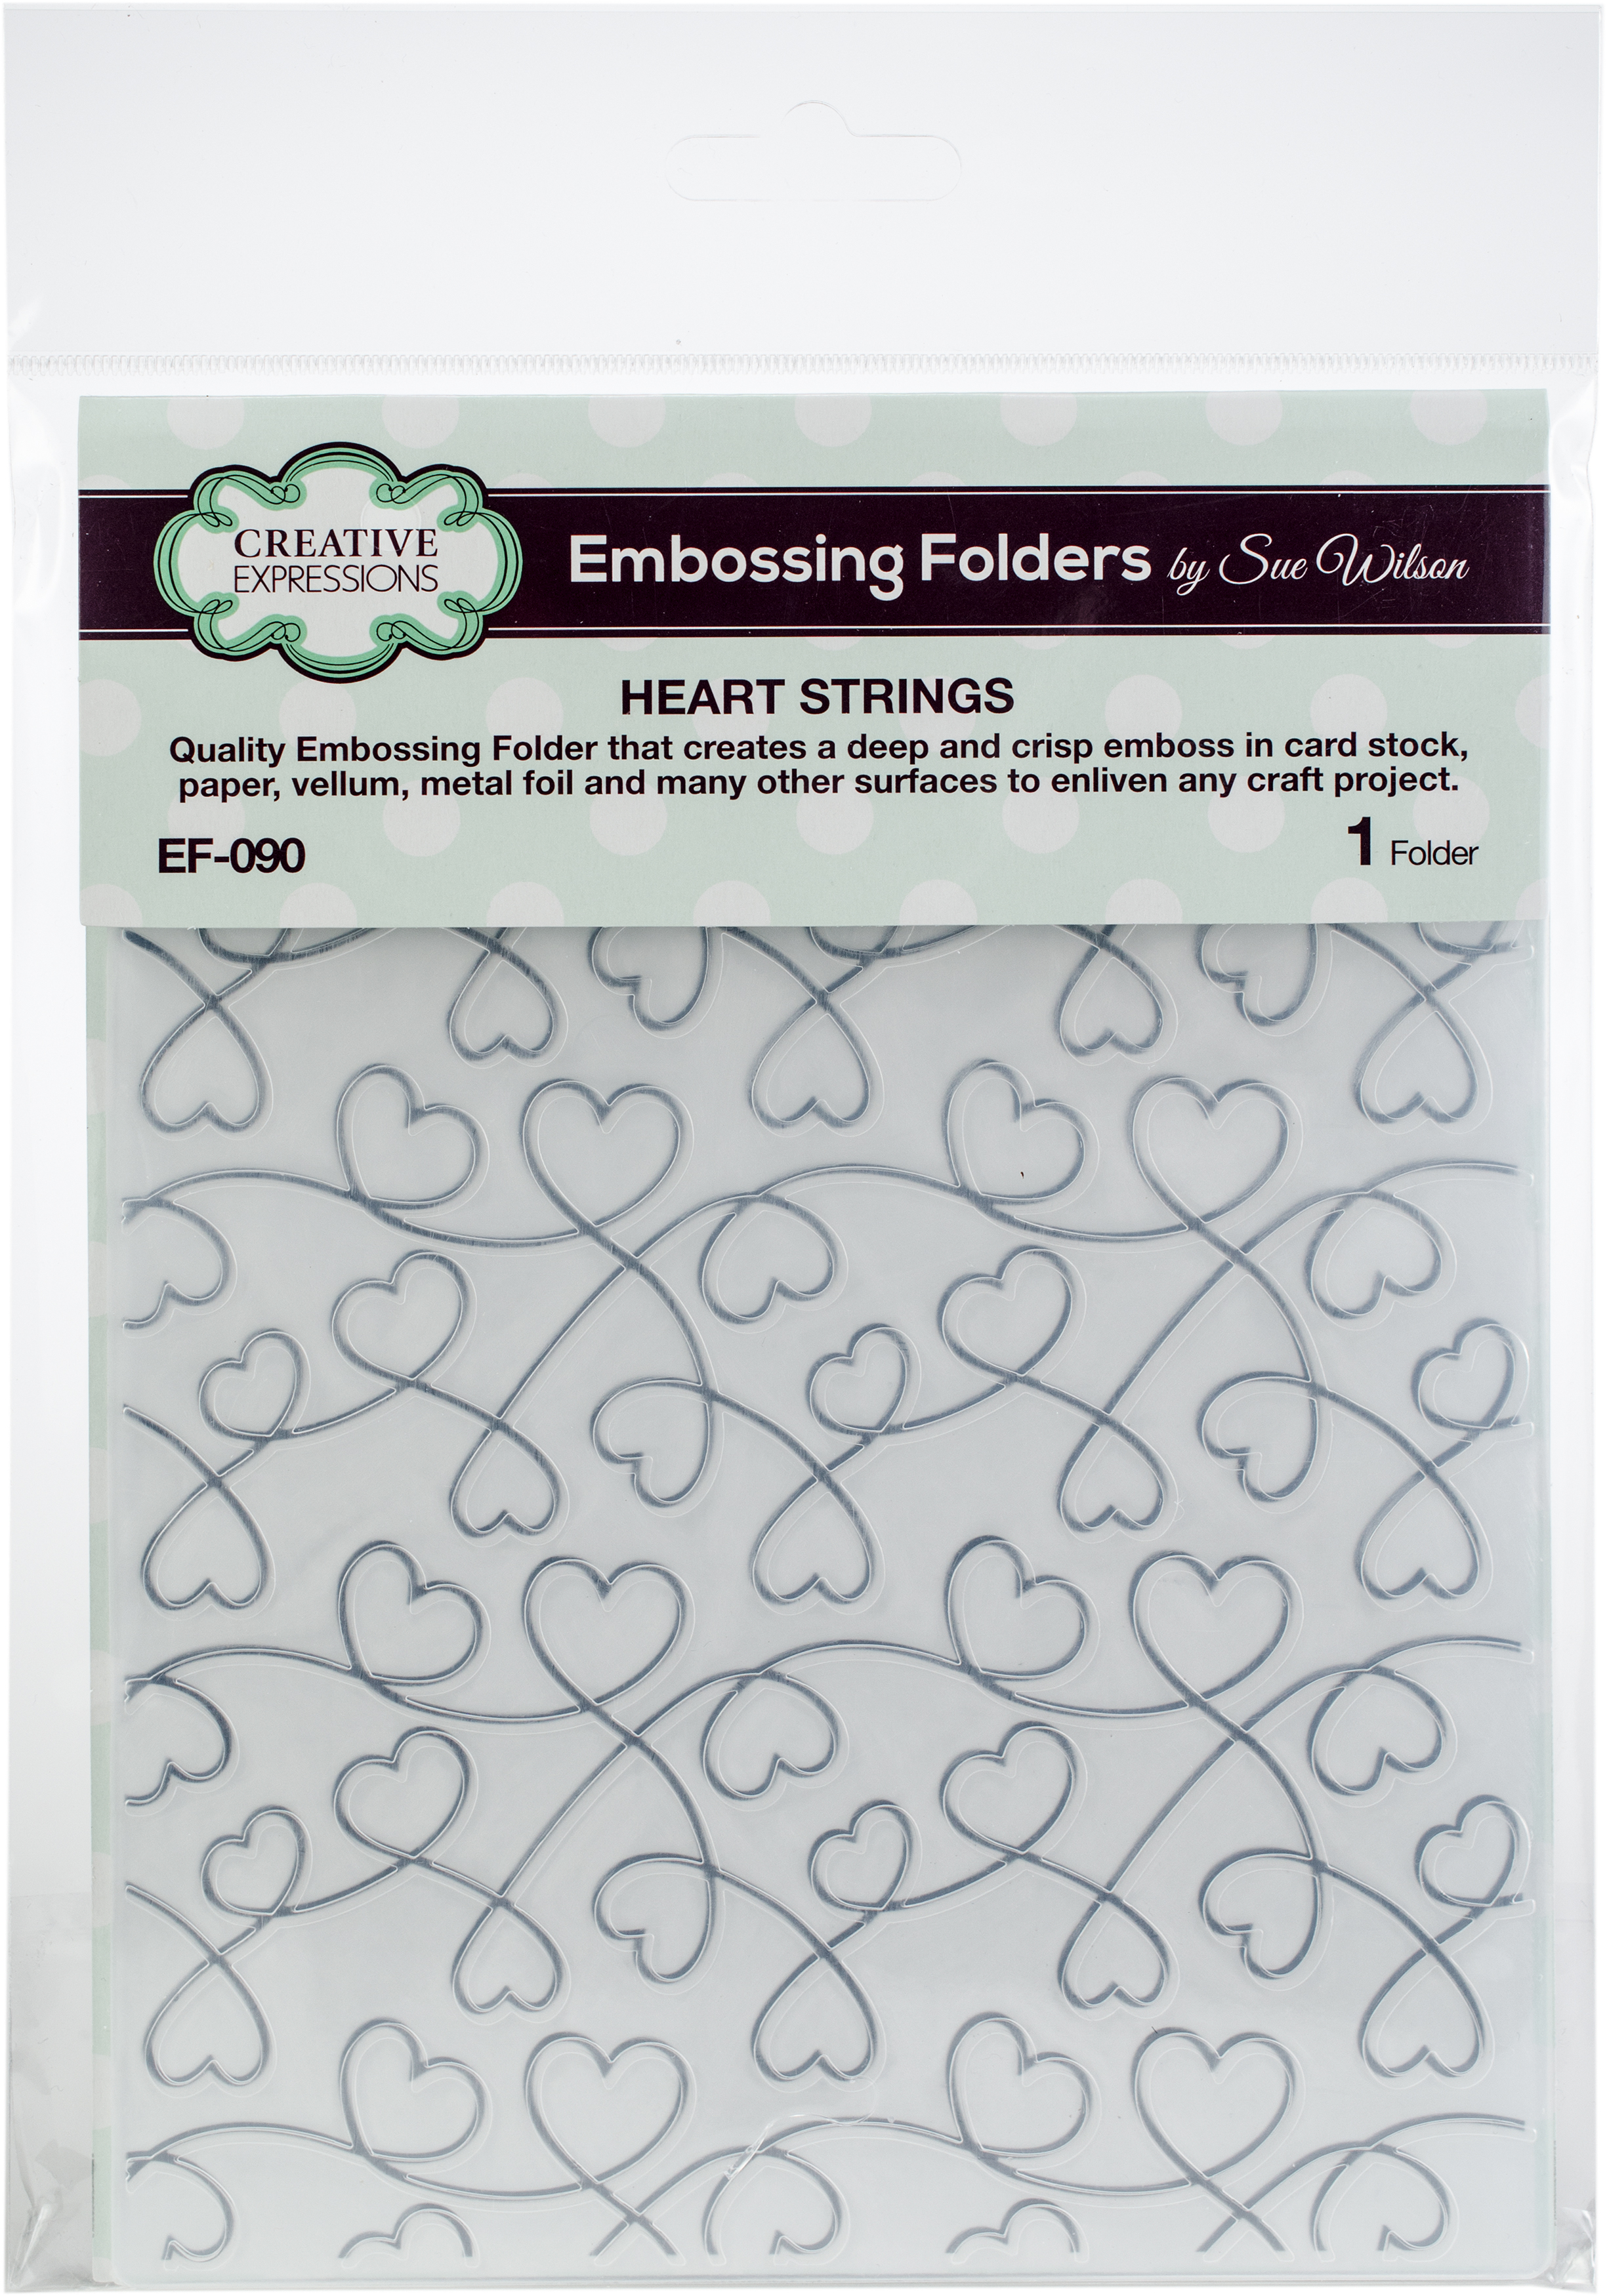 Creative Expressions Embossing Folder By Sue Wilson-Heart Strings